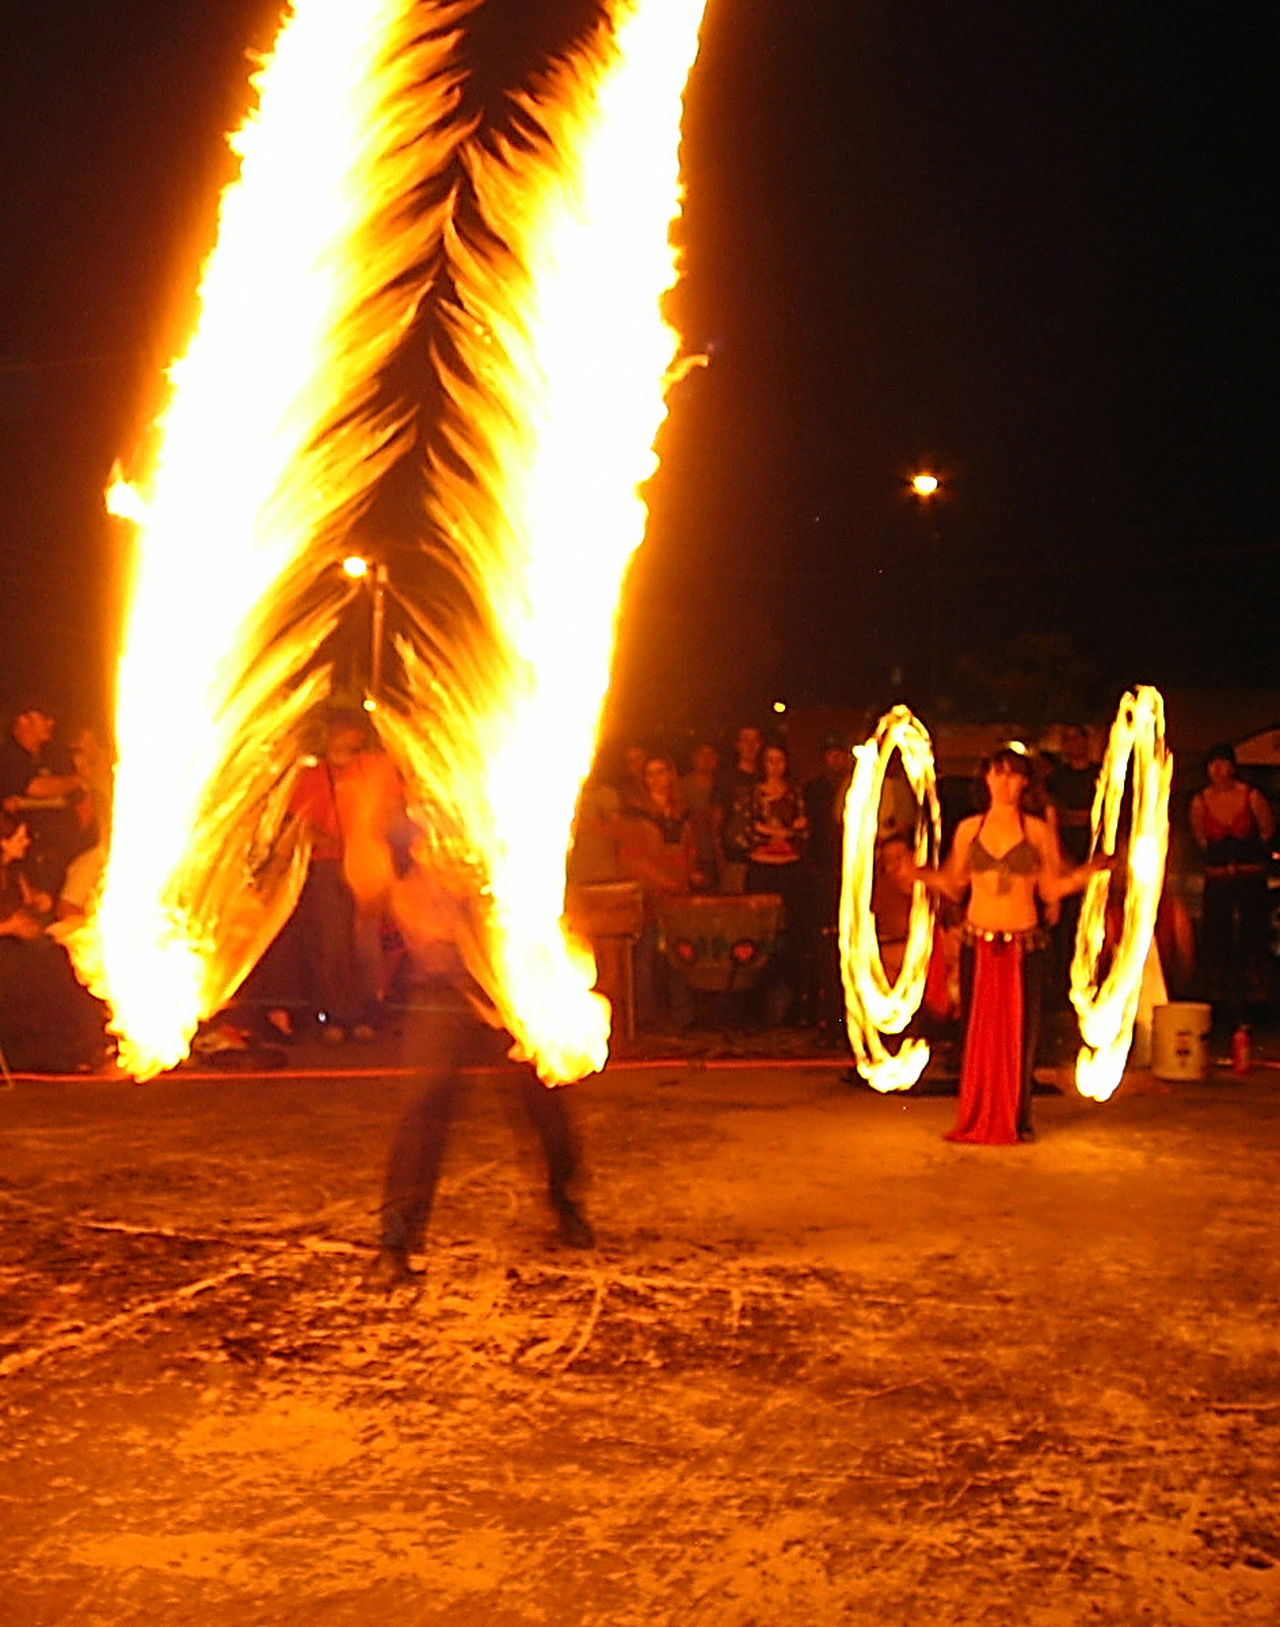 Arts Culture And Entertainment Burning Celebration Dancer Dancing Expertise Flame Full Length Fun Heat - Temperature Illuminated Large Group Of People Leisure Activity Lifestyles Long Exposure Men Motion Night Performance Performing Arts Event Real People Skill  Strength Togetherness Women